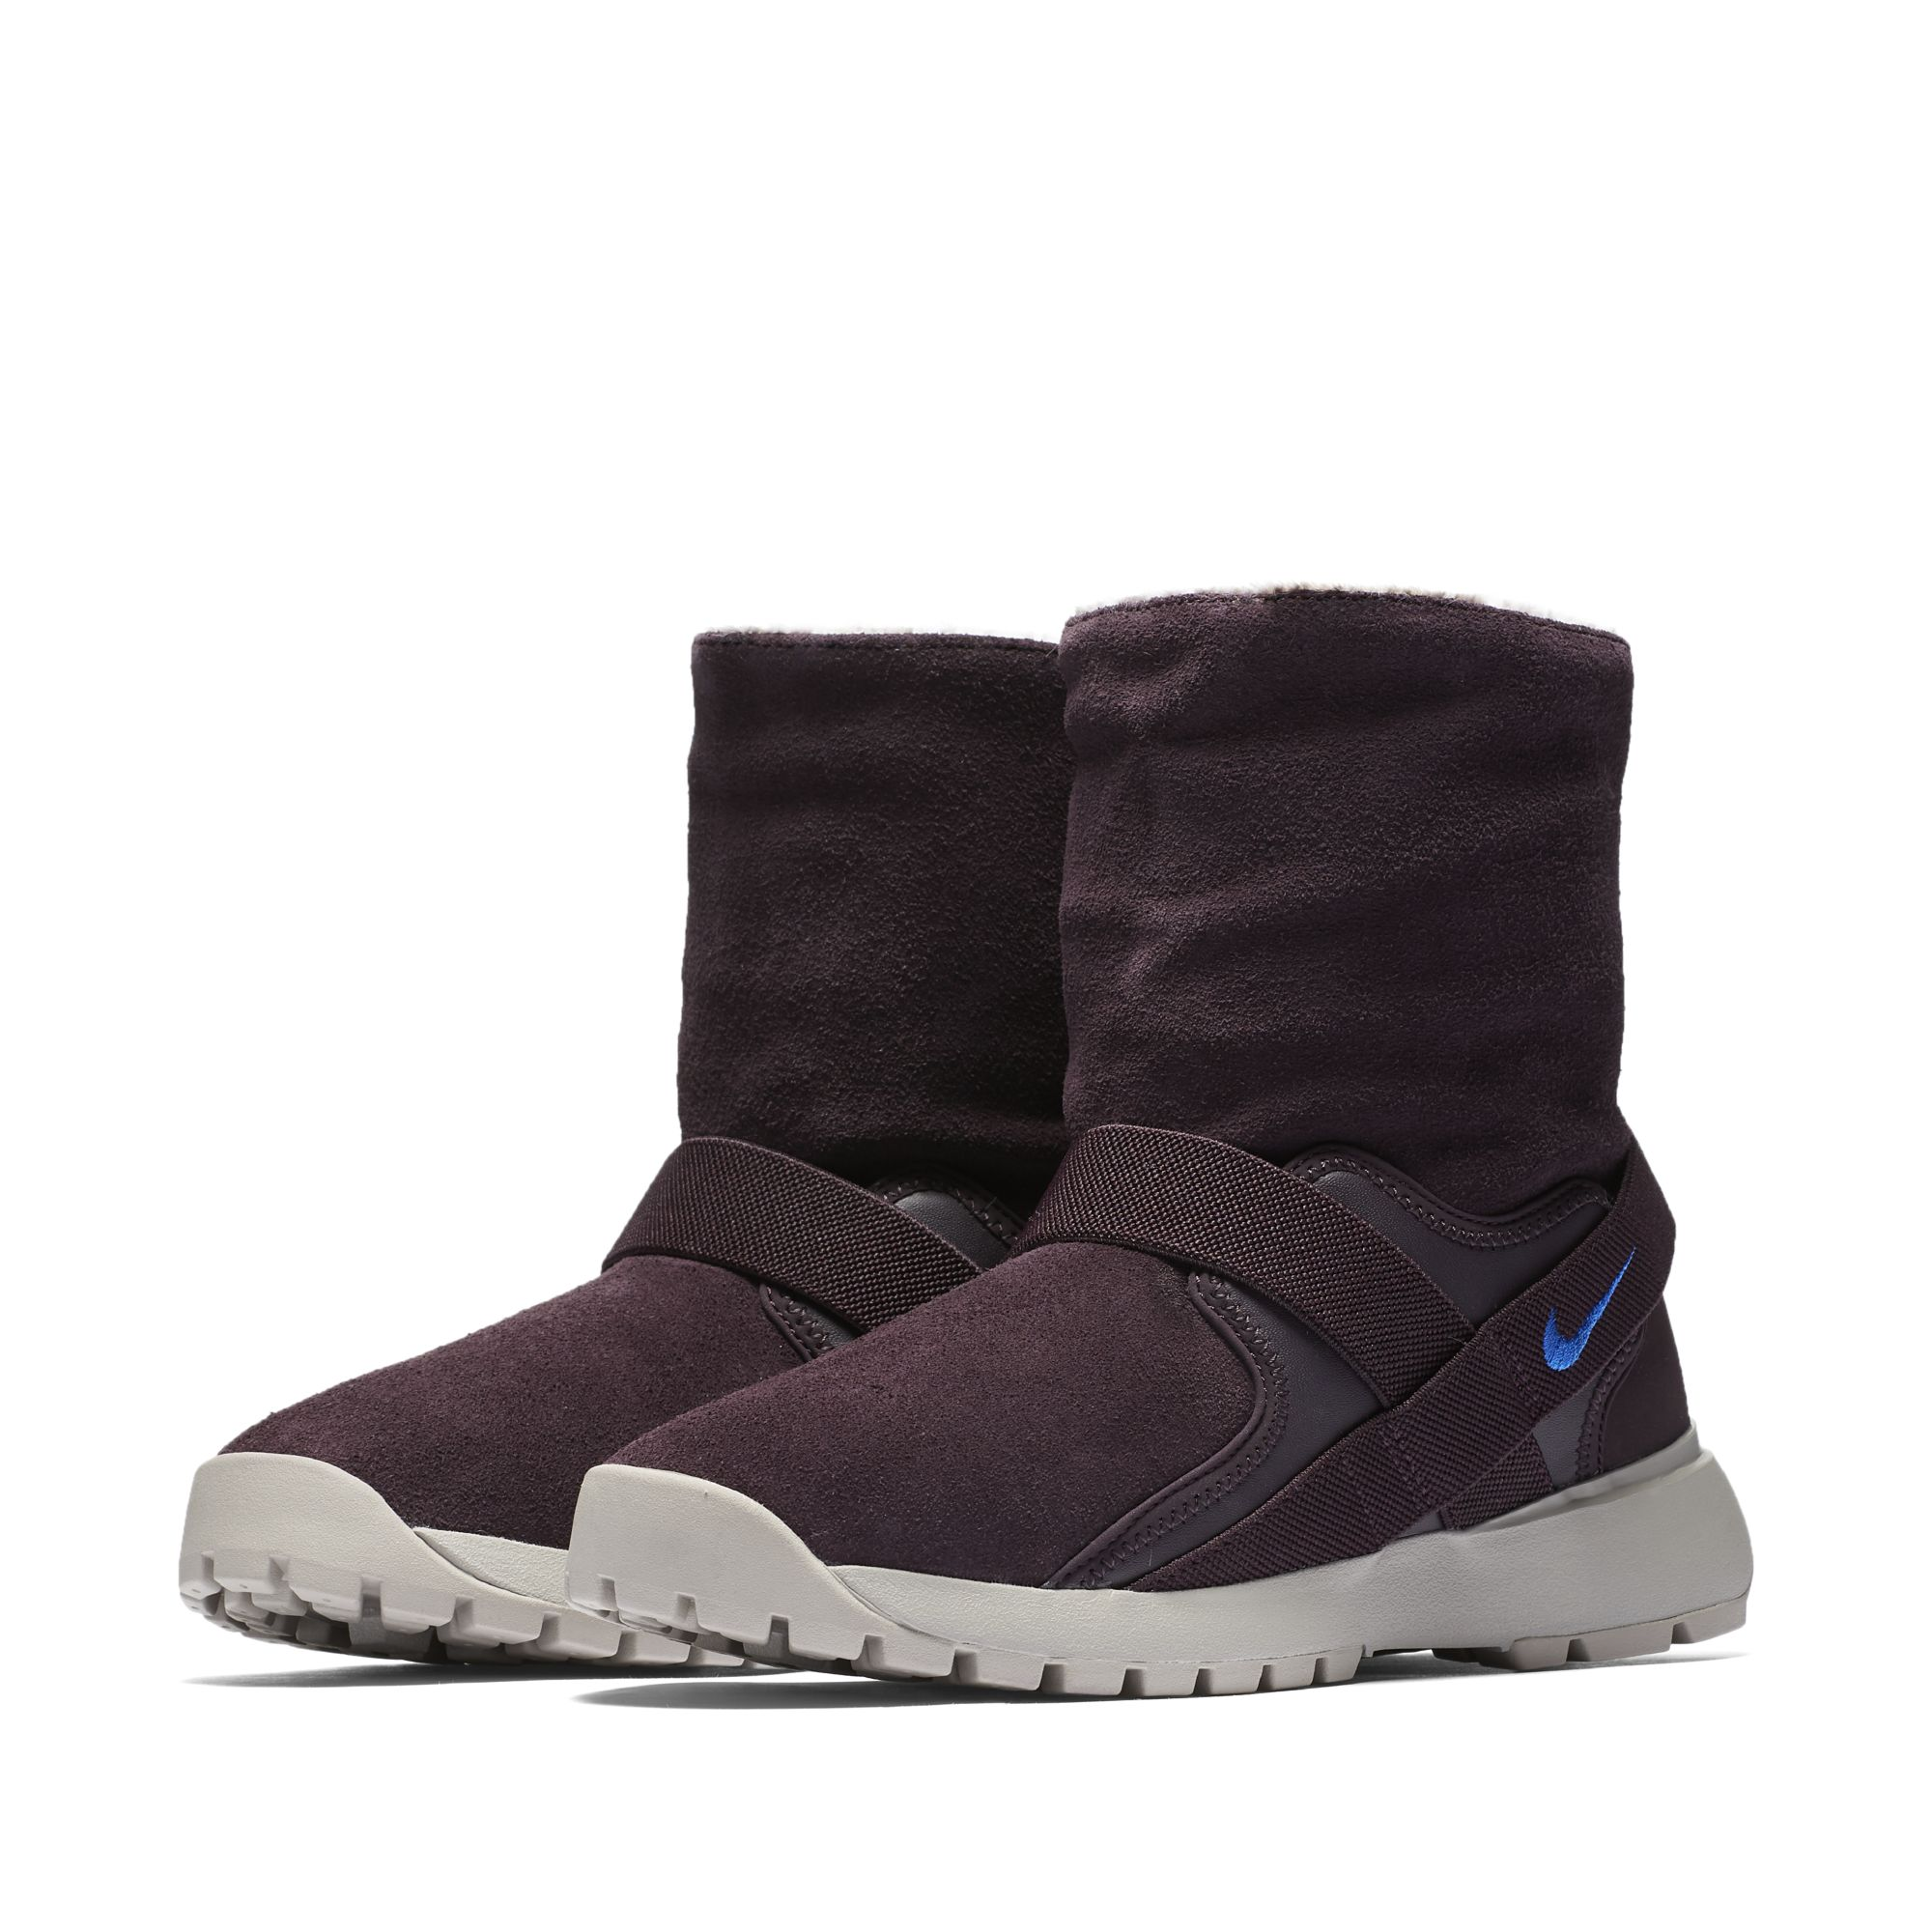 Nike Has Created Its Own Ugg The Golkana Boot Weartesters